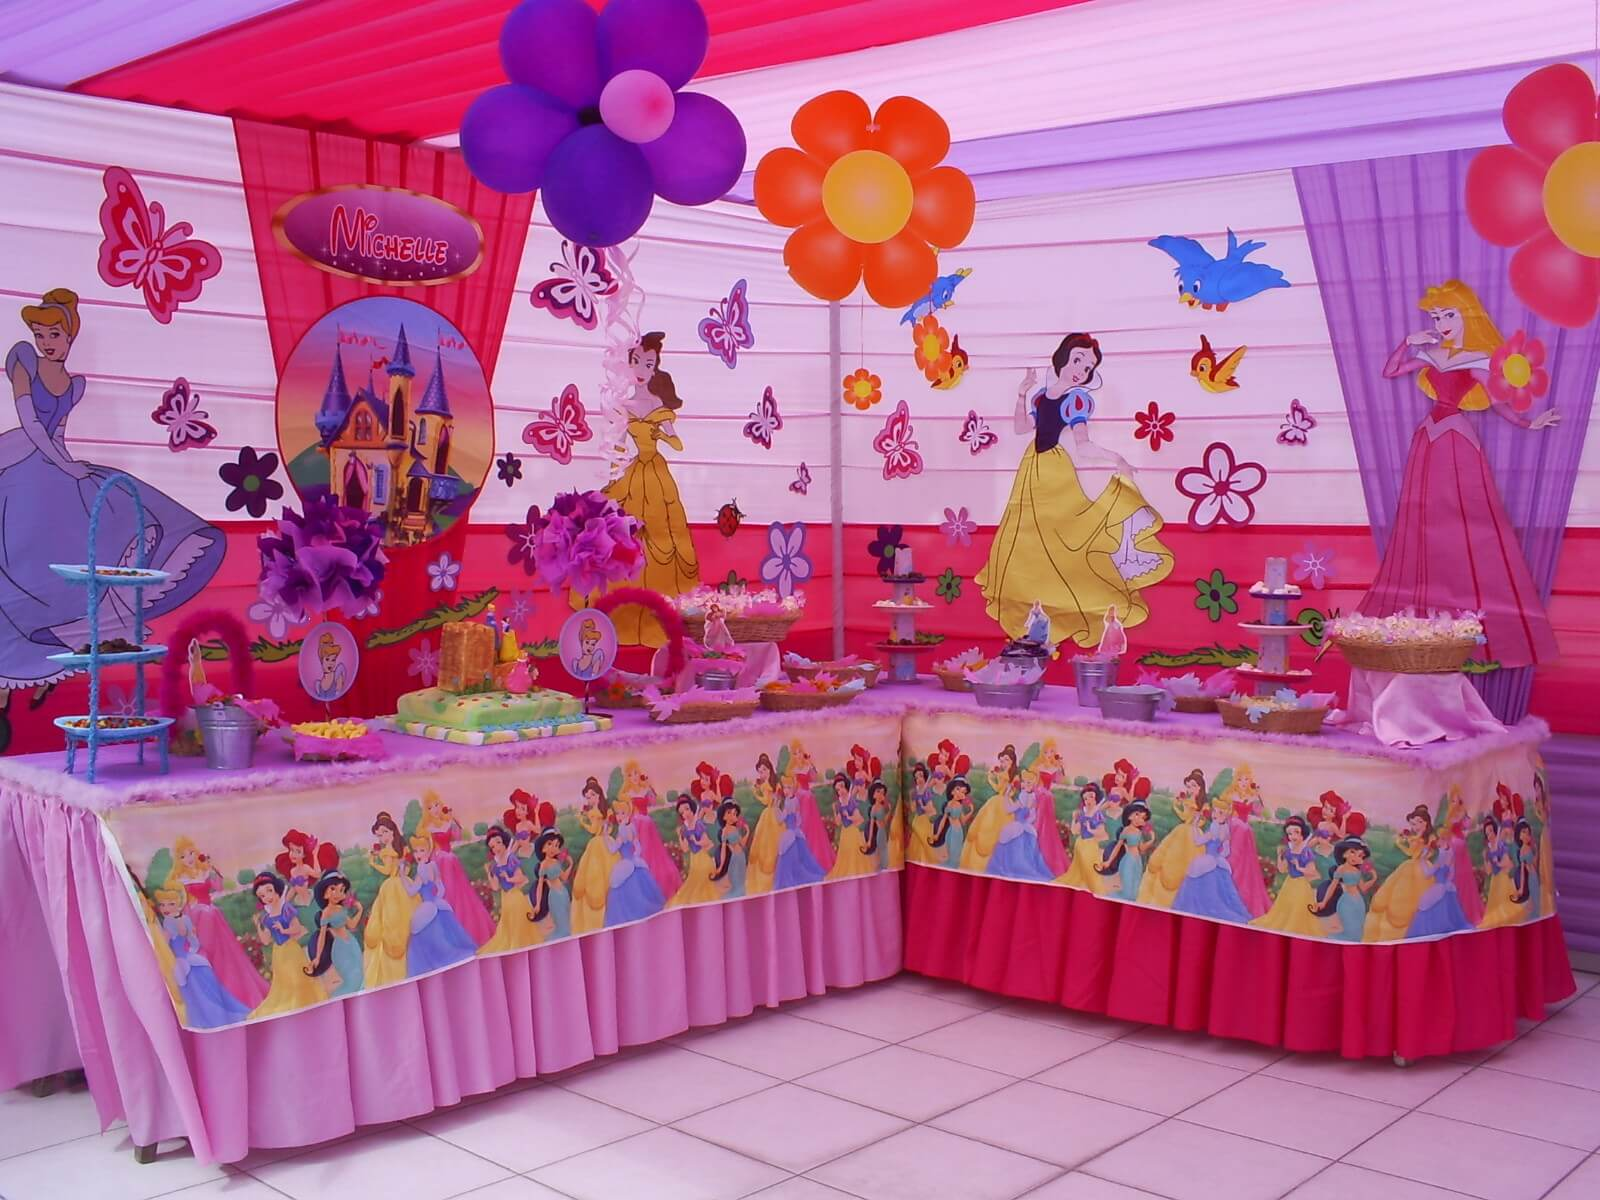 5 pasos para decorar una fiesta infantil for Decoracion de eventos